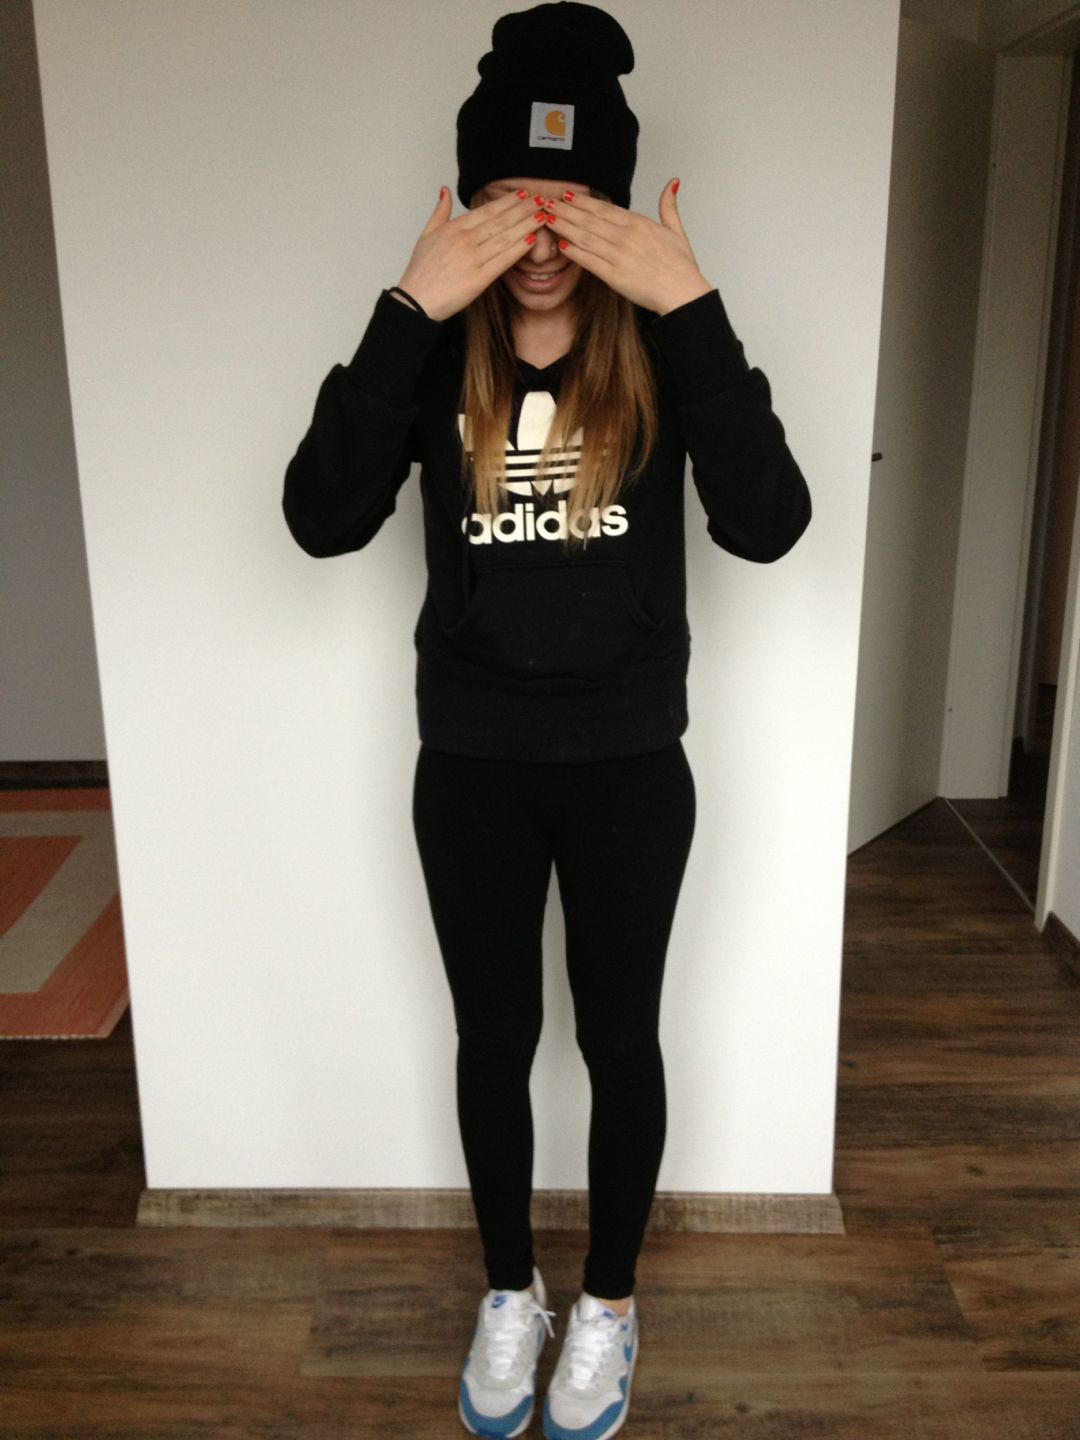 S Ss Adidas Pinterest Adidas Girls And Clothes